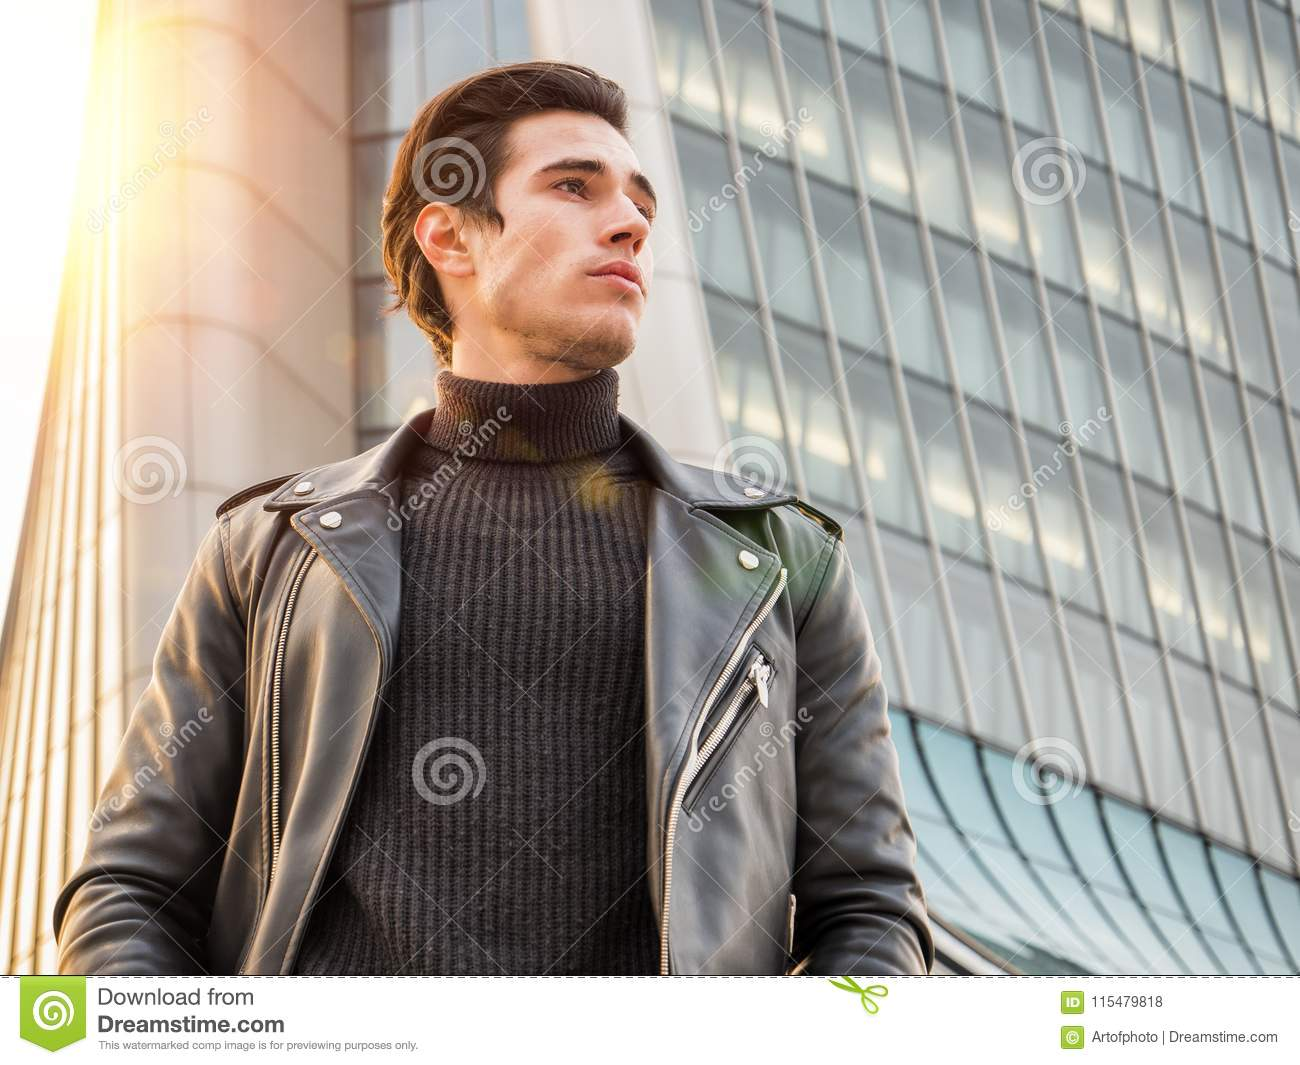 9add8409 One handsome young man in urban setting in modern city, standing, wearing  black leather jacket and jeans